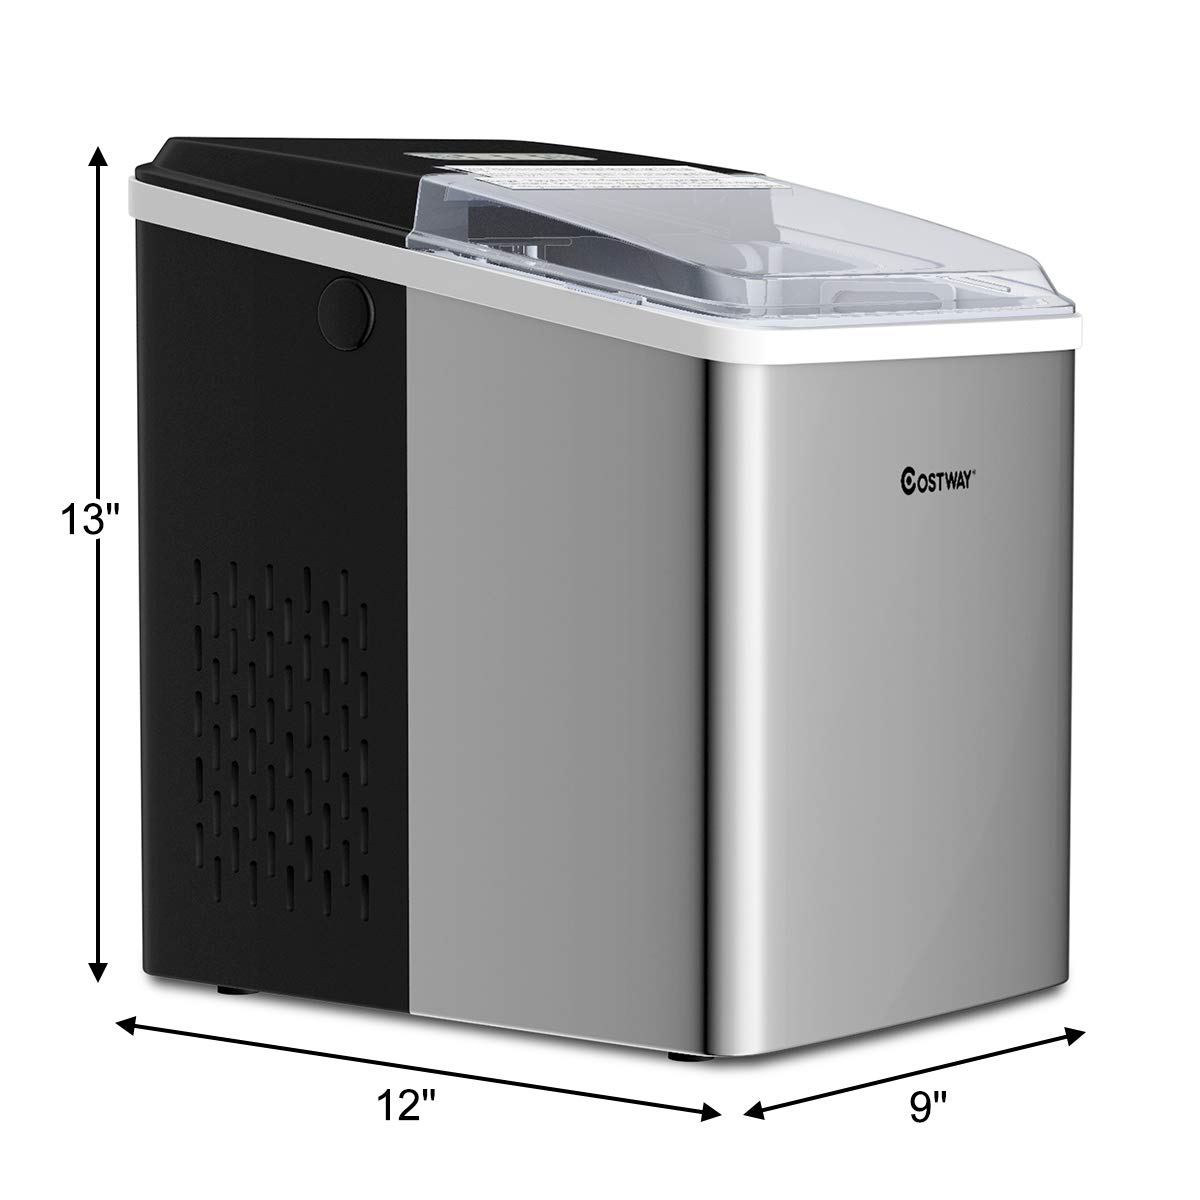 Bar and Restaurant 26LBS//24H for Home Ice Cubes Ready in 7 Minutes with Ice Scoop COSTWAY Ice Maker 26LBS//24H Portable Electric Countertop Ice Machine Stainless Steel with Self-clean Function